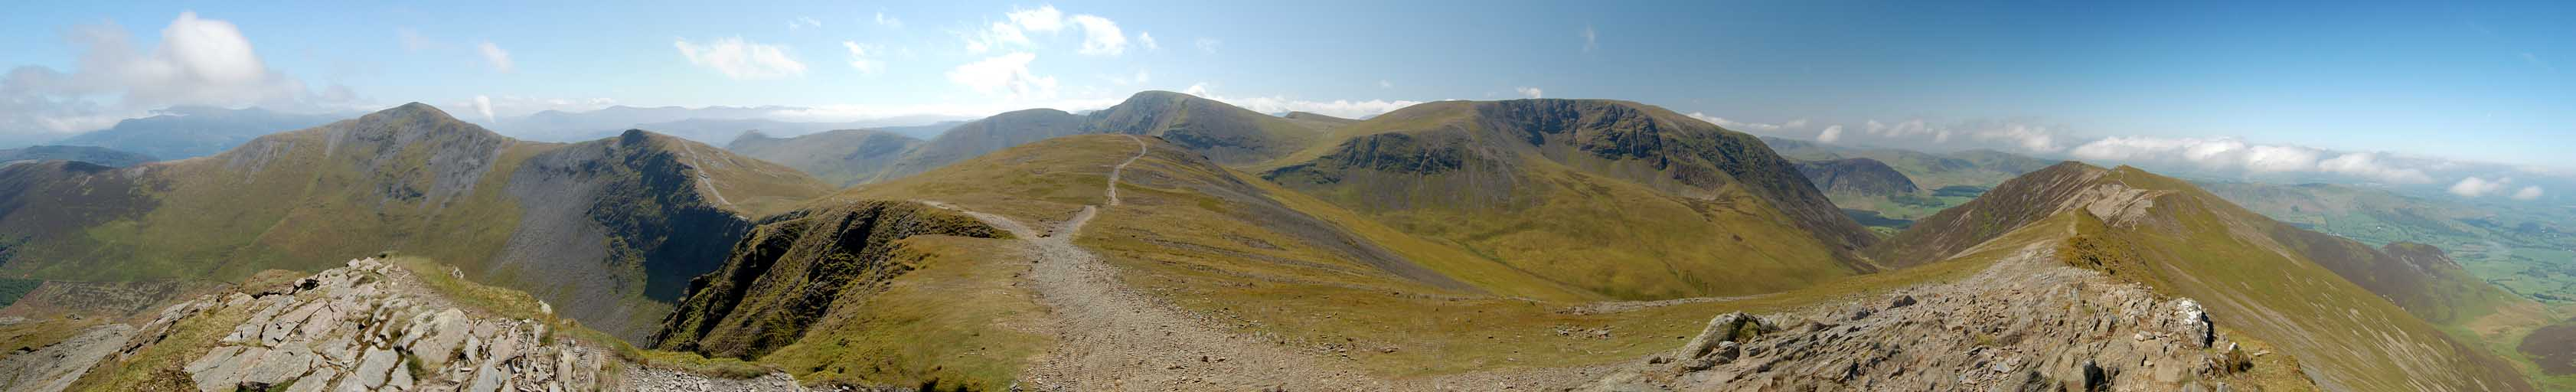 Hopegill Head Panorama